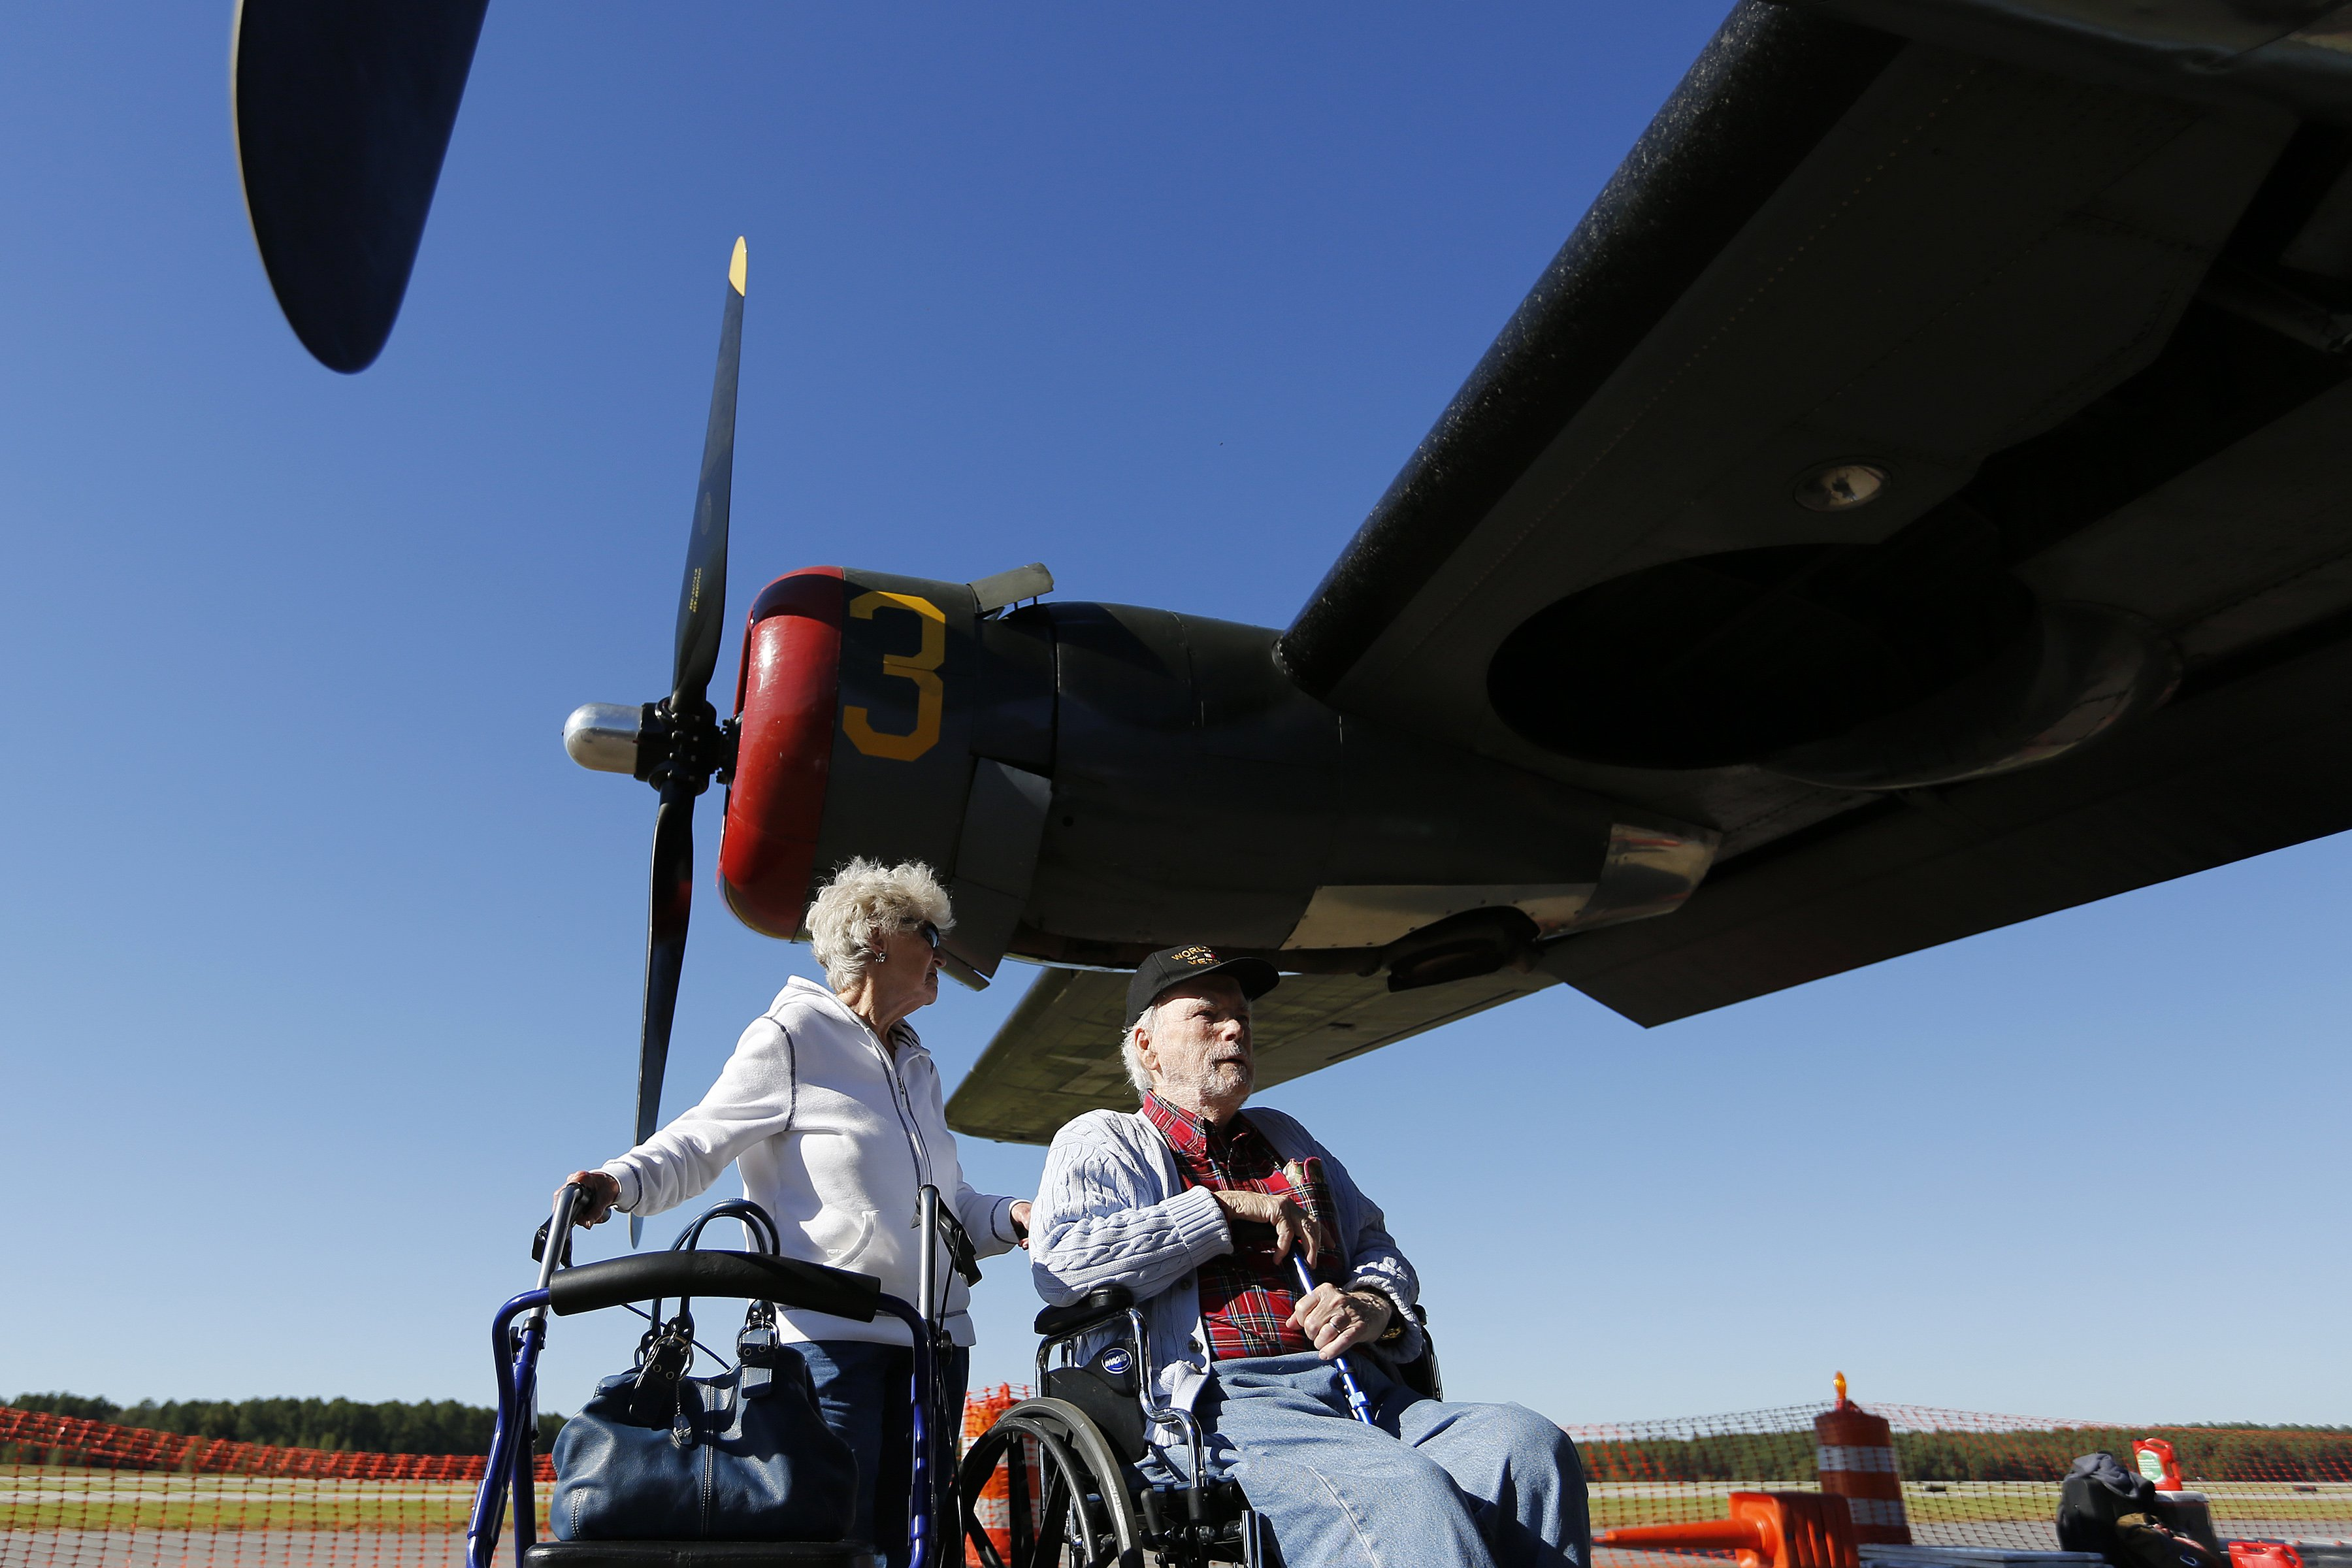 Bob Richeson, 91, of Wilson, NC, talks with his wife Gerry as they examine the world's only flying B-24J Liberator during the Wings of Freedom Tour at Raleigh-Durham International Airport, October 19, 2017. Richeson was a nose gunner in a B-24 in WWII that crashed and was one of only three crew members that survived. He still has trouble talking about the event. Hosted by the Collings Foundation, Wings of Freedom visits more than 100 cities a year to show off working pieces of American war history as well as to educate people about the veterans of WWII. The tour will be in Burlington, NC until 12 pm on Oct. 25 and then move to Statesville, NC through Oct. 27. (Eamon Queeney / North State Journal)